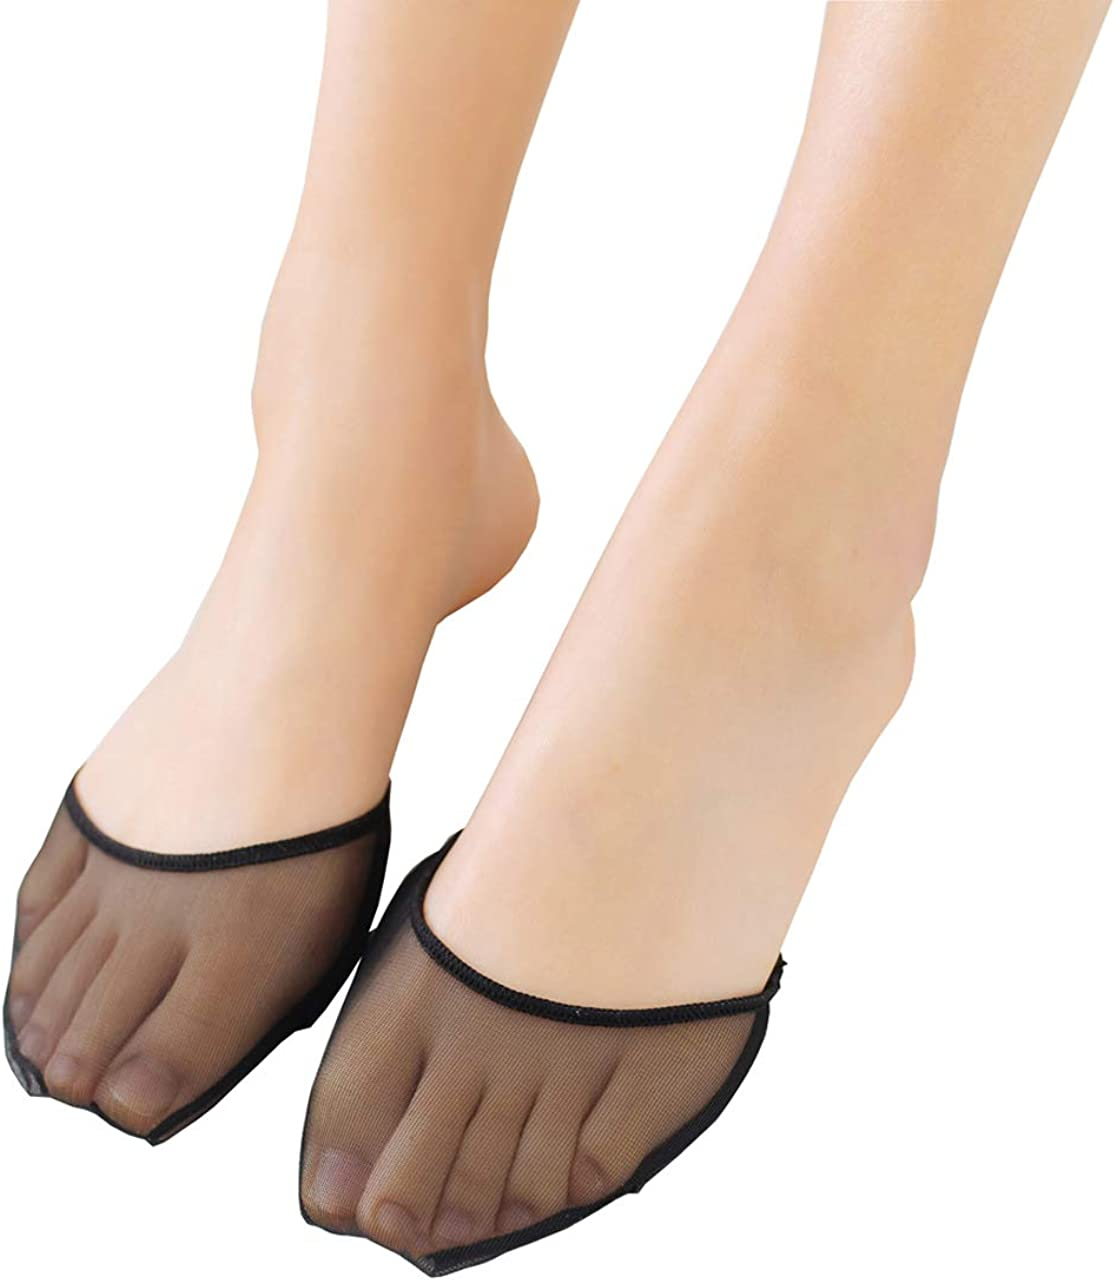 Truevalue Women's 6 Pairs Sheer Toe Cover with Cushion Non-Skid Sole